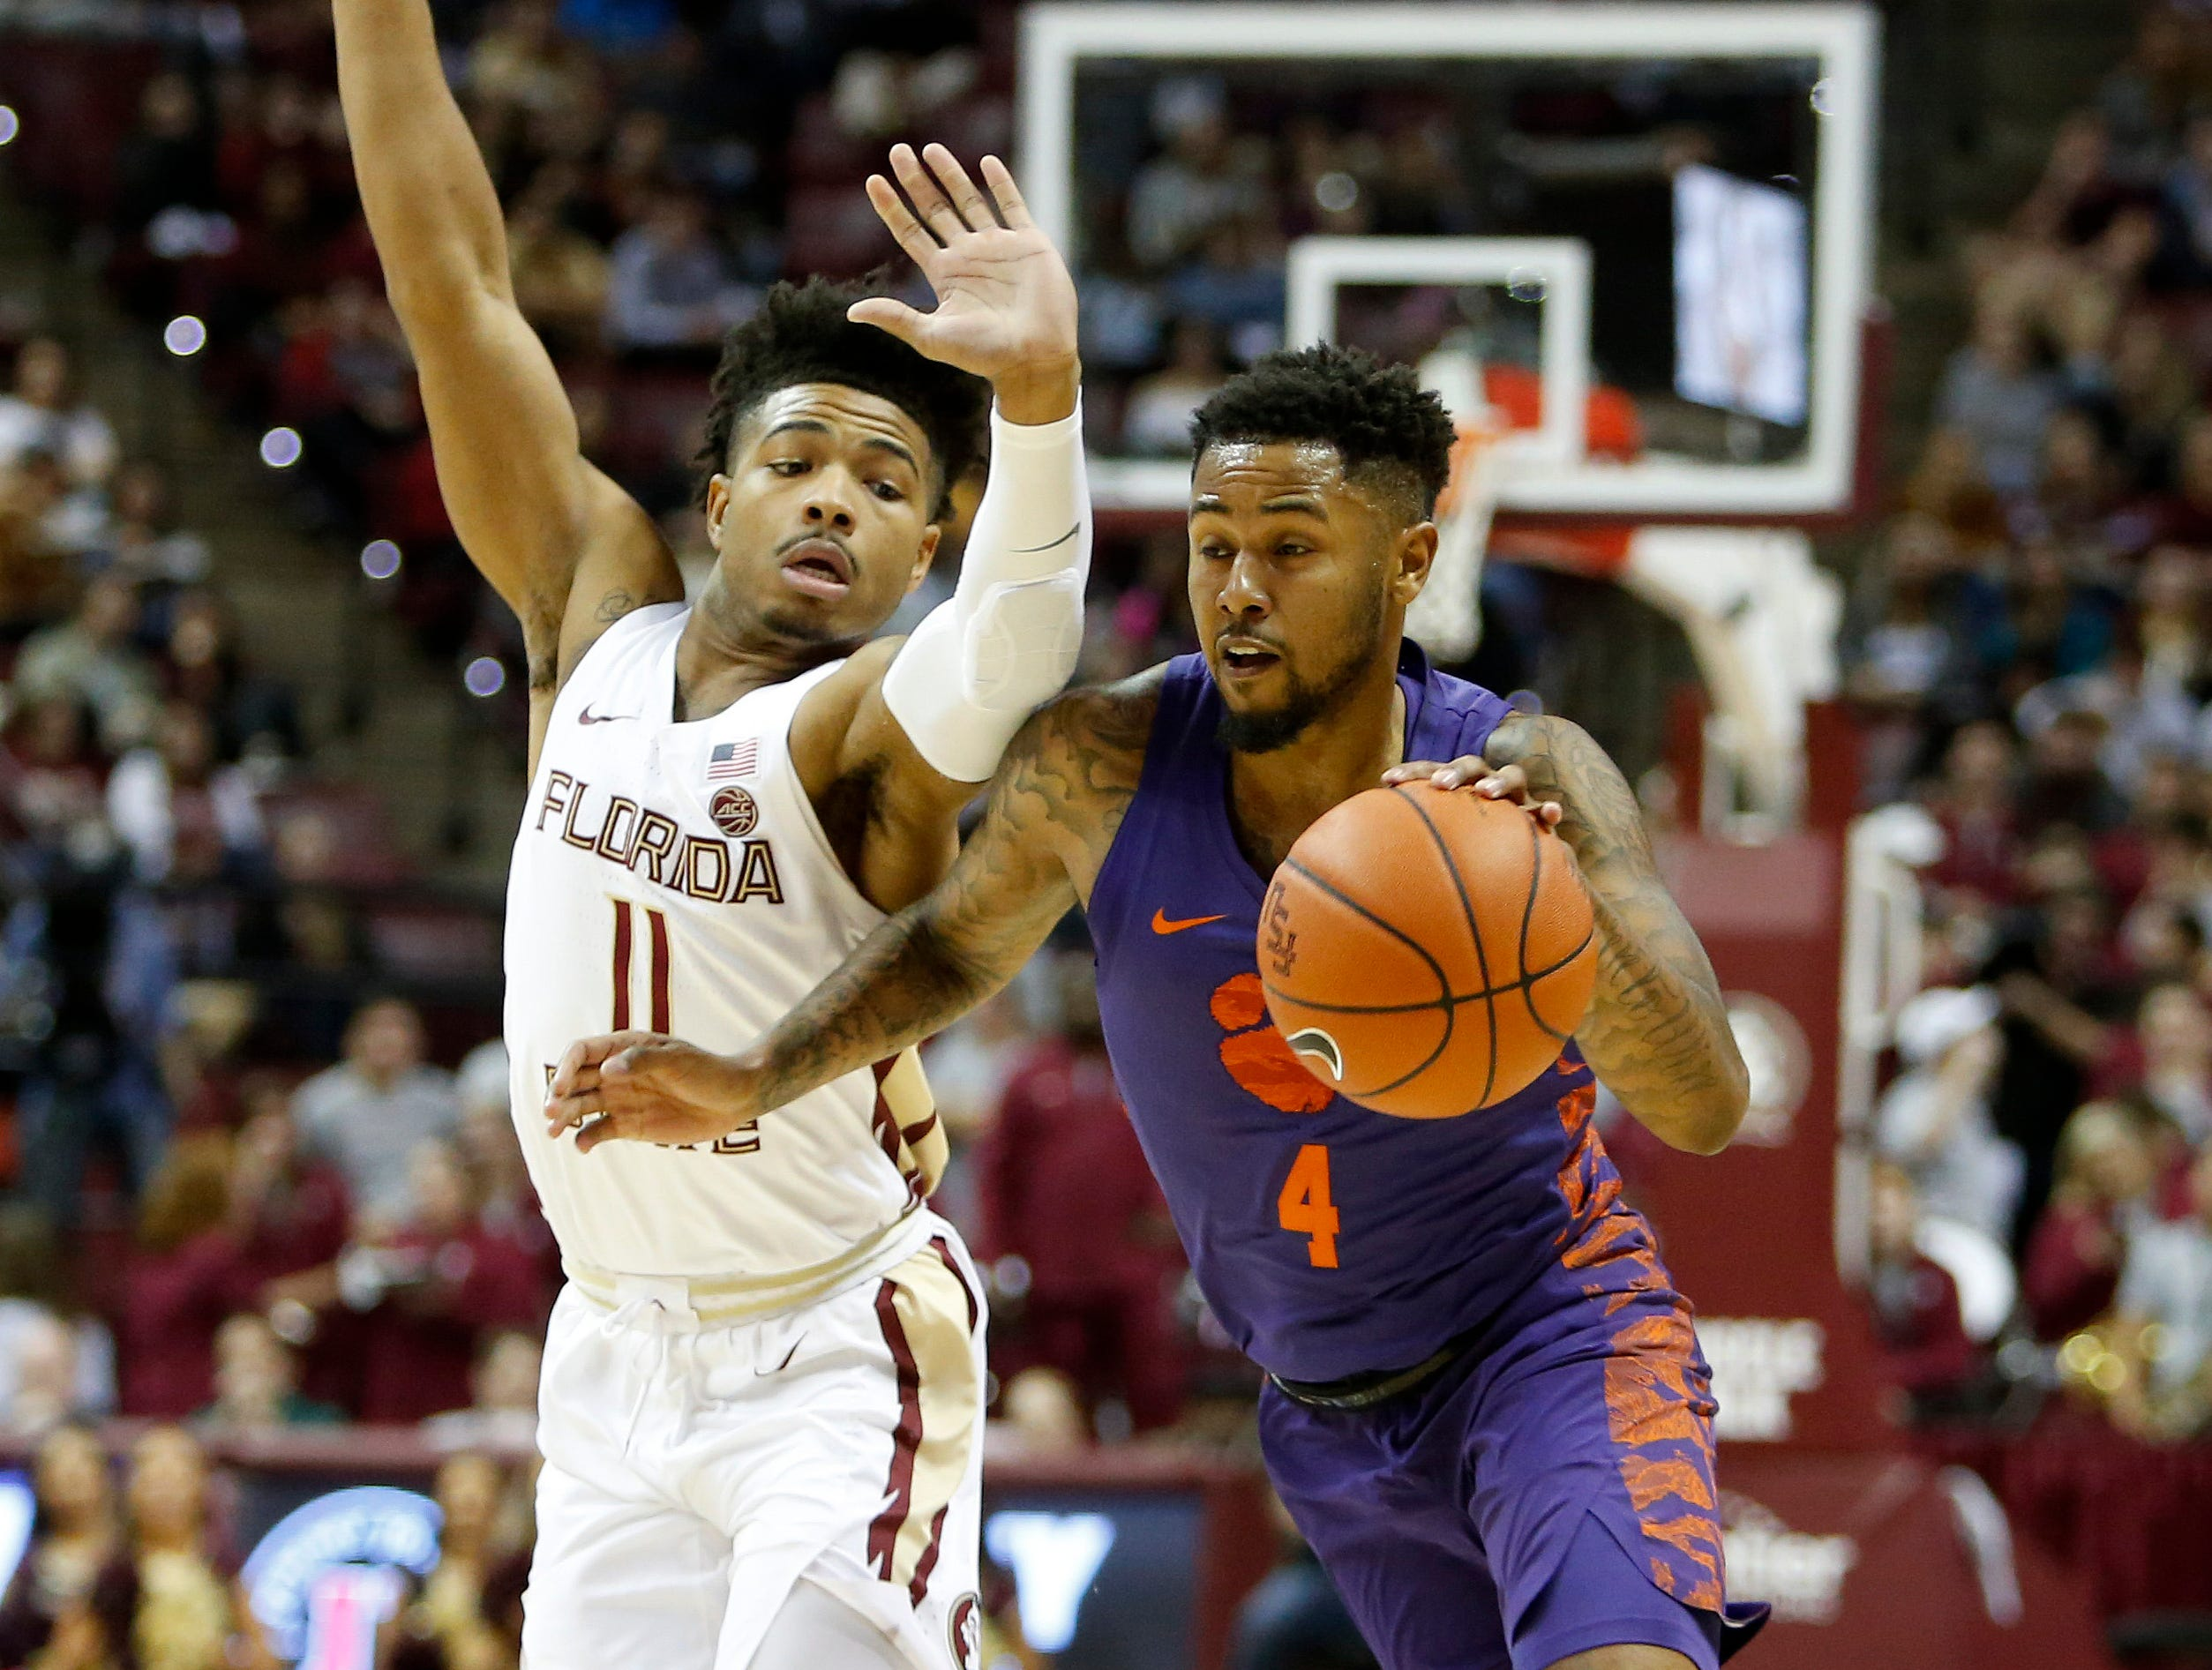 Jan 22, 2019; Tallahassee, FL, USA; Clemson Tigers guard Shelton Mitchell (4) drives against Florida State Seminoles guard David Nichols (11) during the first half at Donald L. Tucker Center. Mandatory Credit: Glenn Beil-USA TODAY Sports